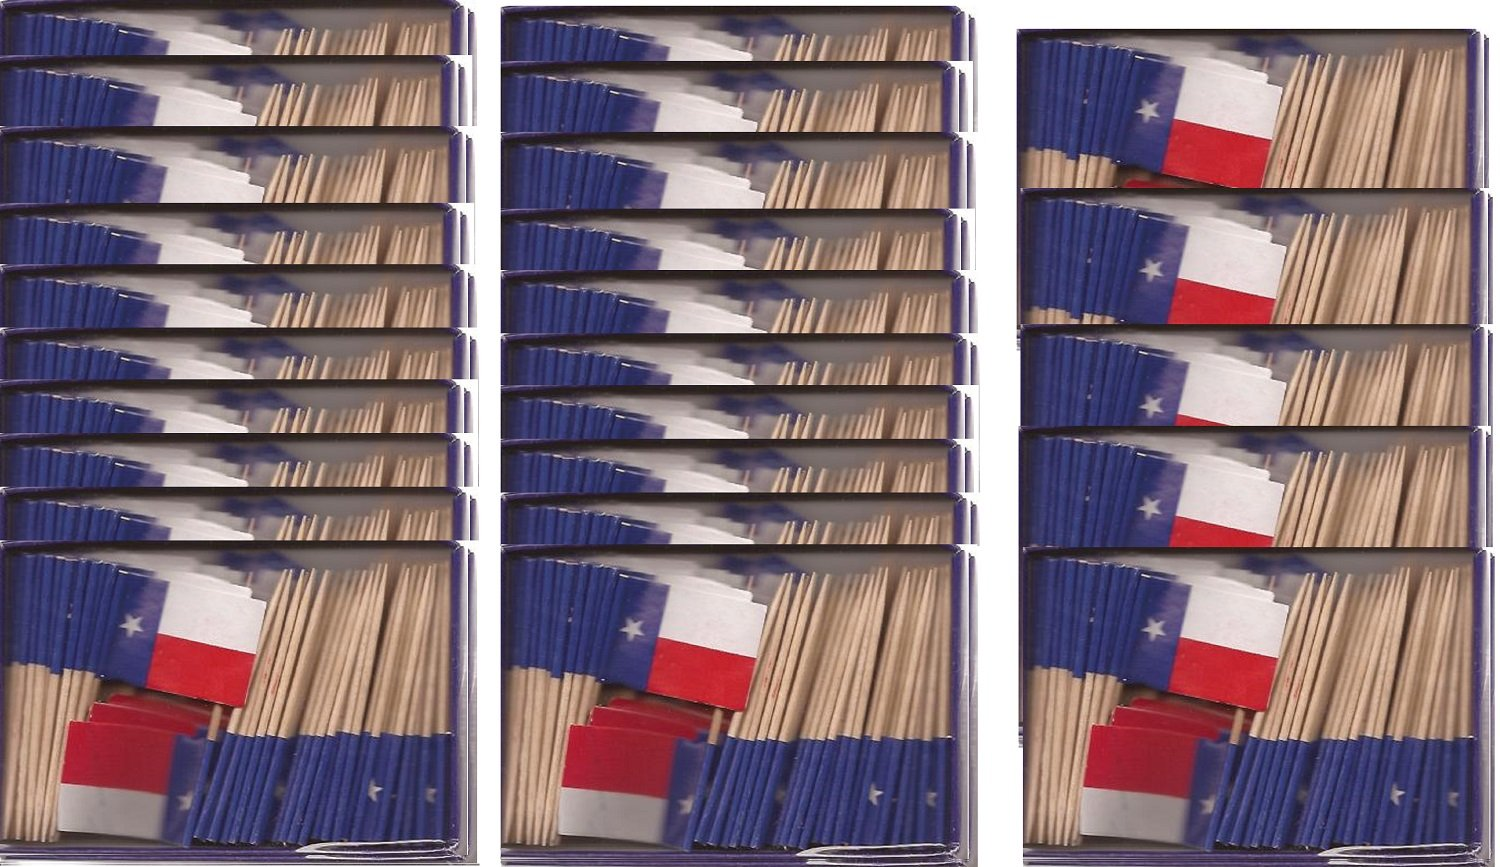 25 Box Wholesale Lot of Texas Toothpick Flags, 2500 Small Mini Texan TX Flag Cupcake Toothpicks or Cocktail Picks by World Flags Direct (Image #1)